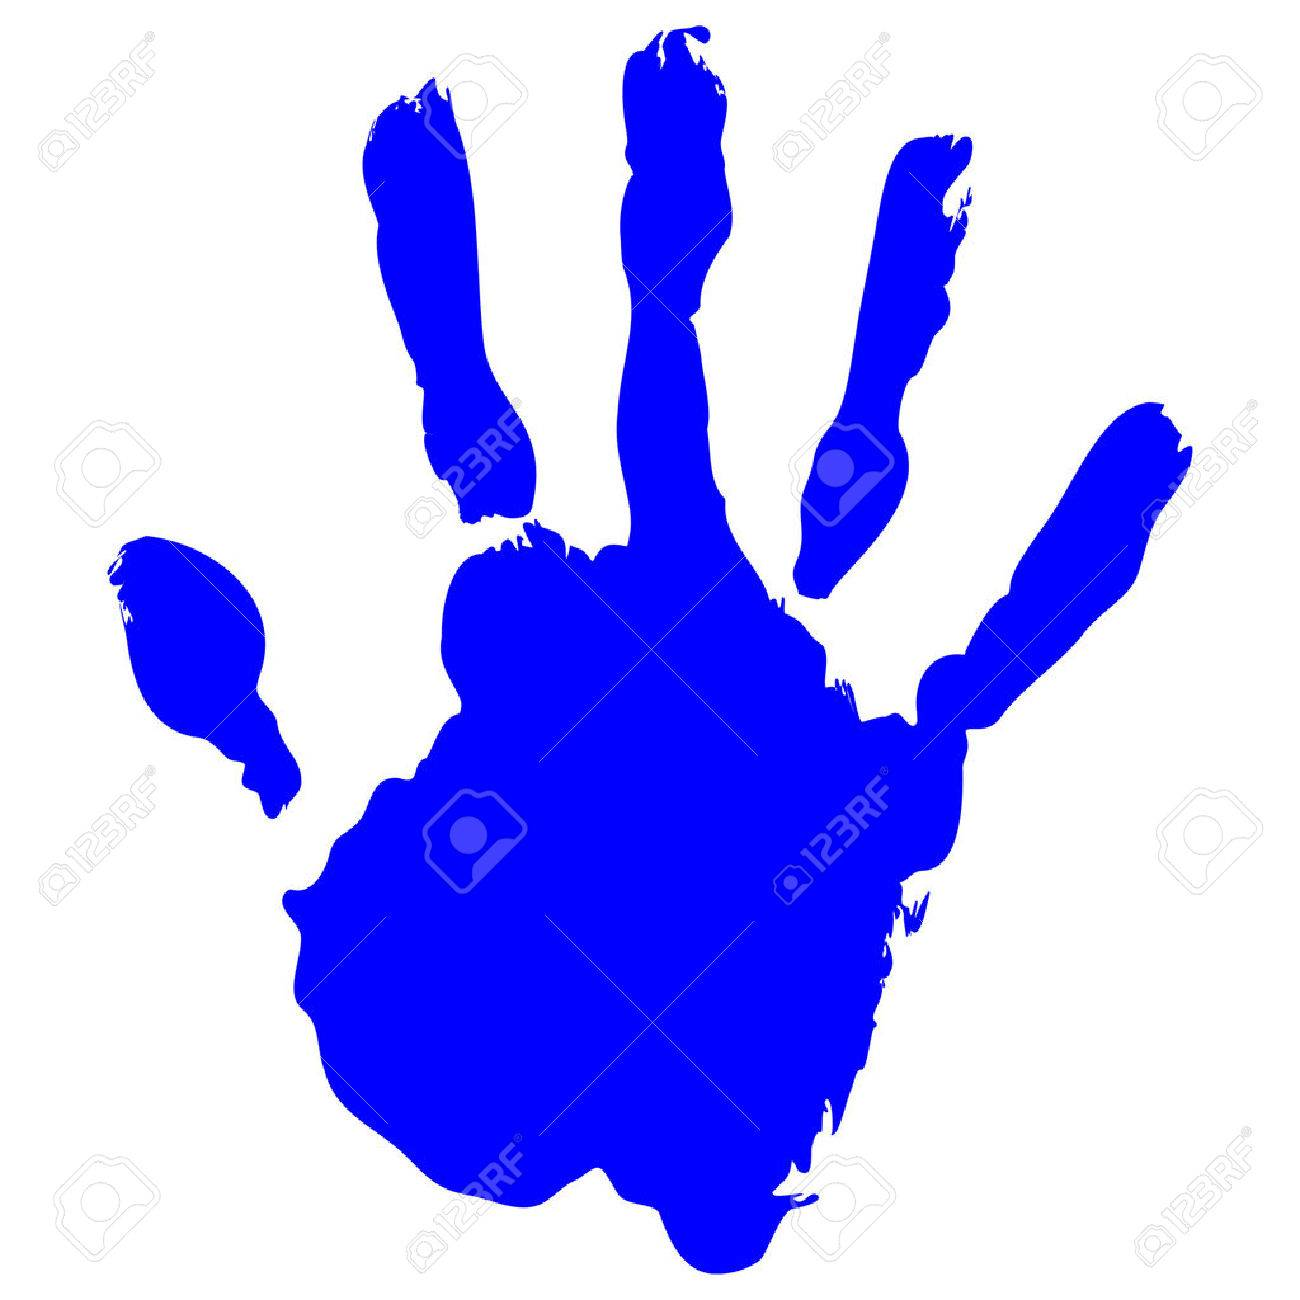 blue handprint vector on pure white background royalty free cliparts rh 123rf com bloody handprint vector handprint vector graphic